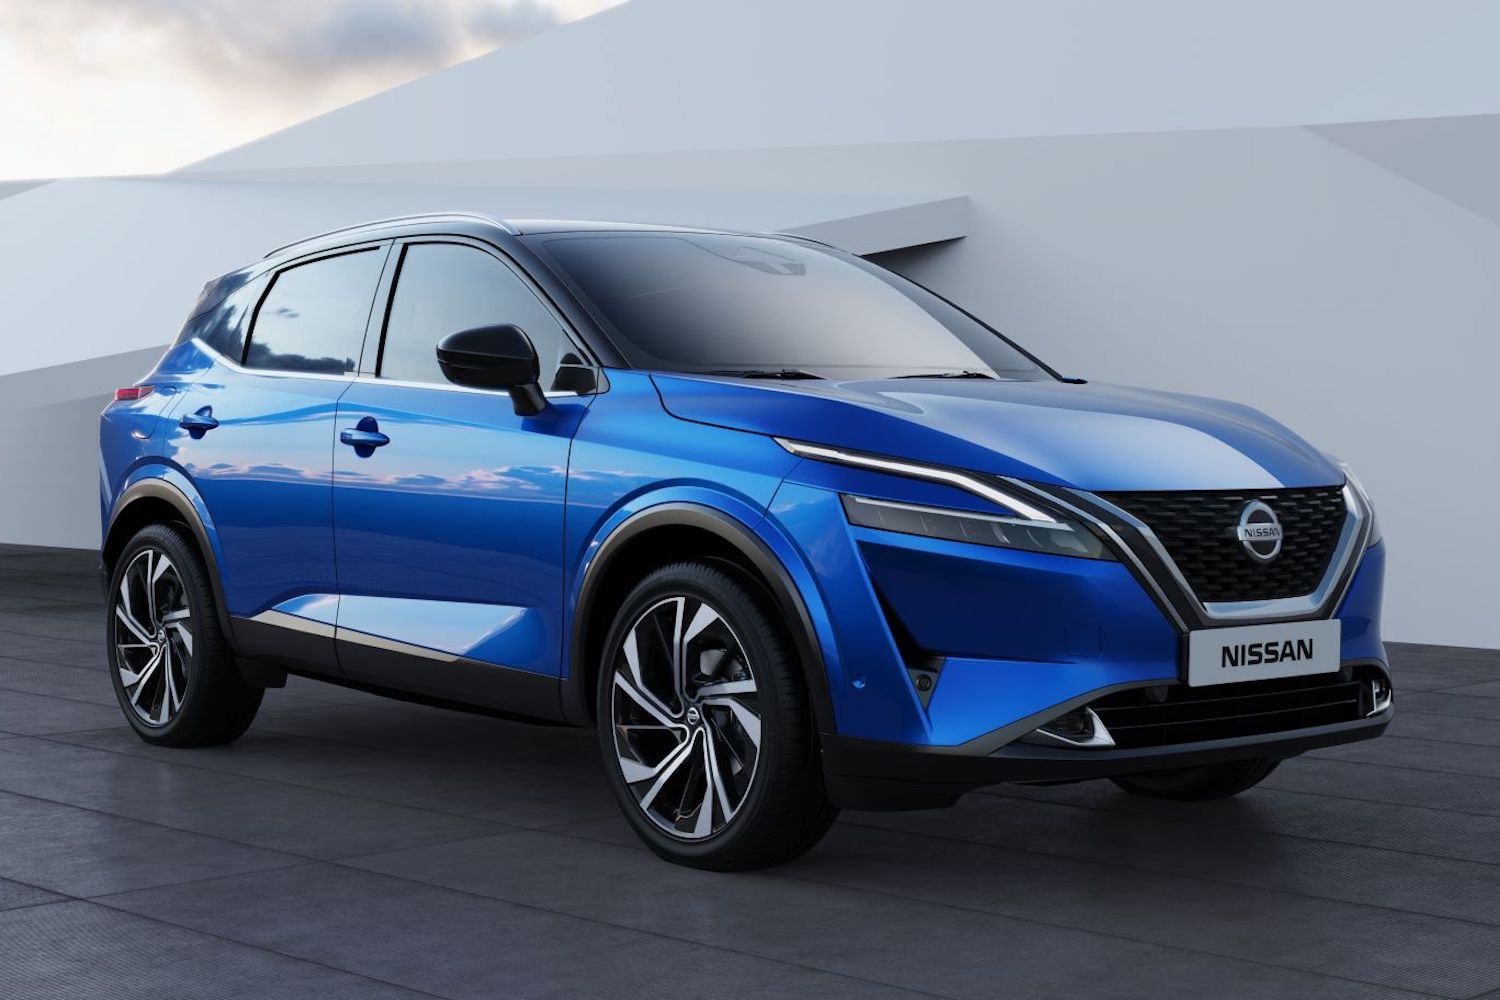 Car News | Nissan Ireland has offers and a new Qashqai for 212 | CompleteCar.ie